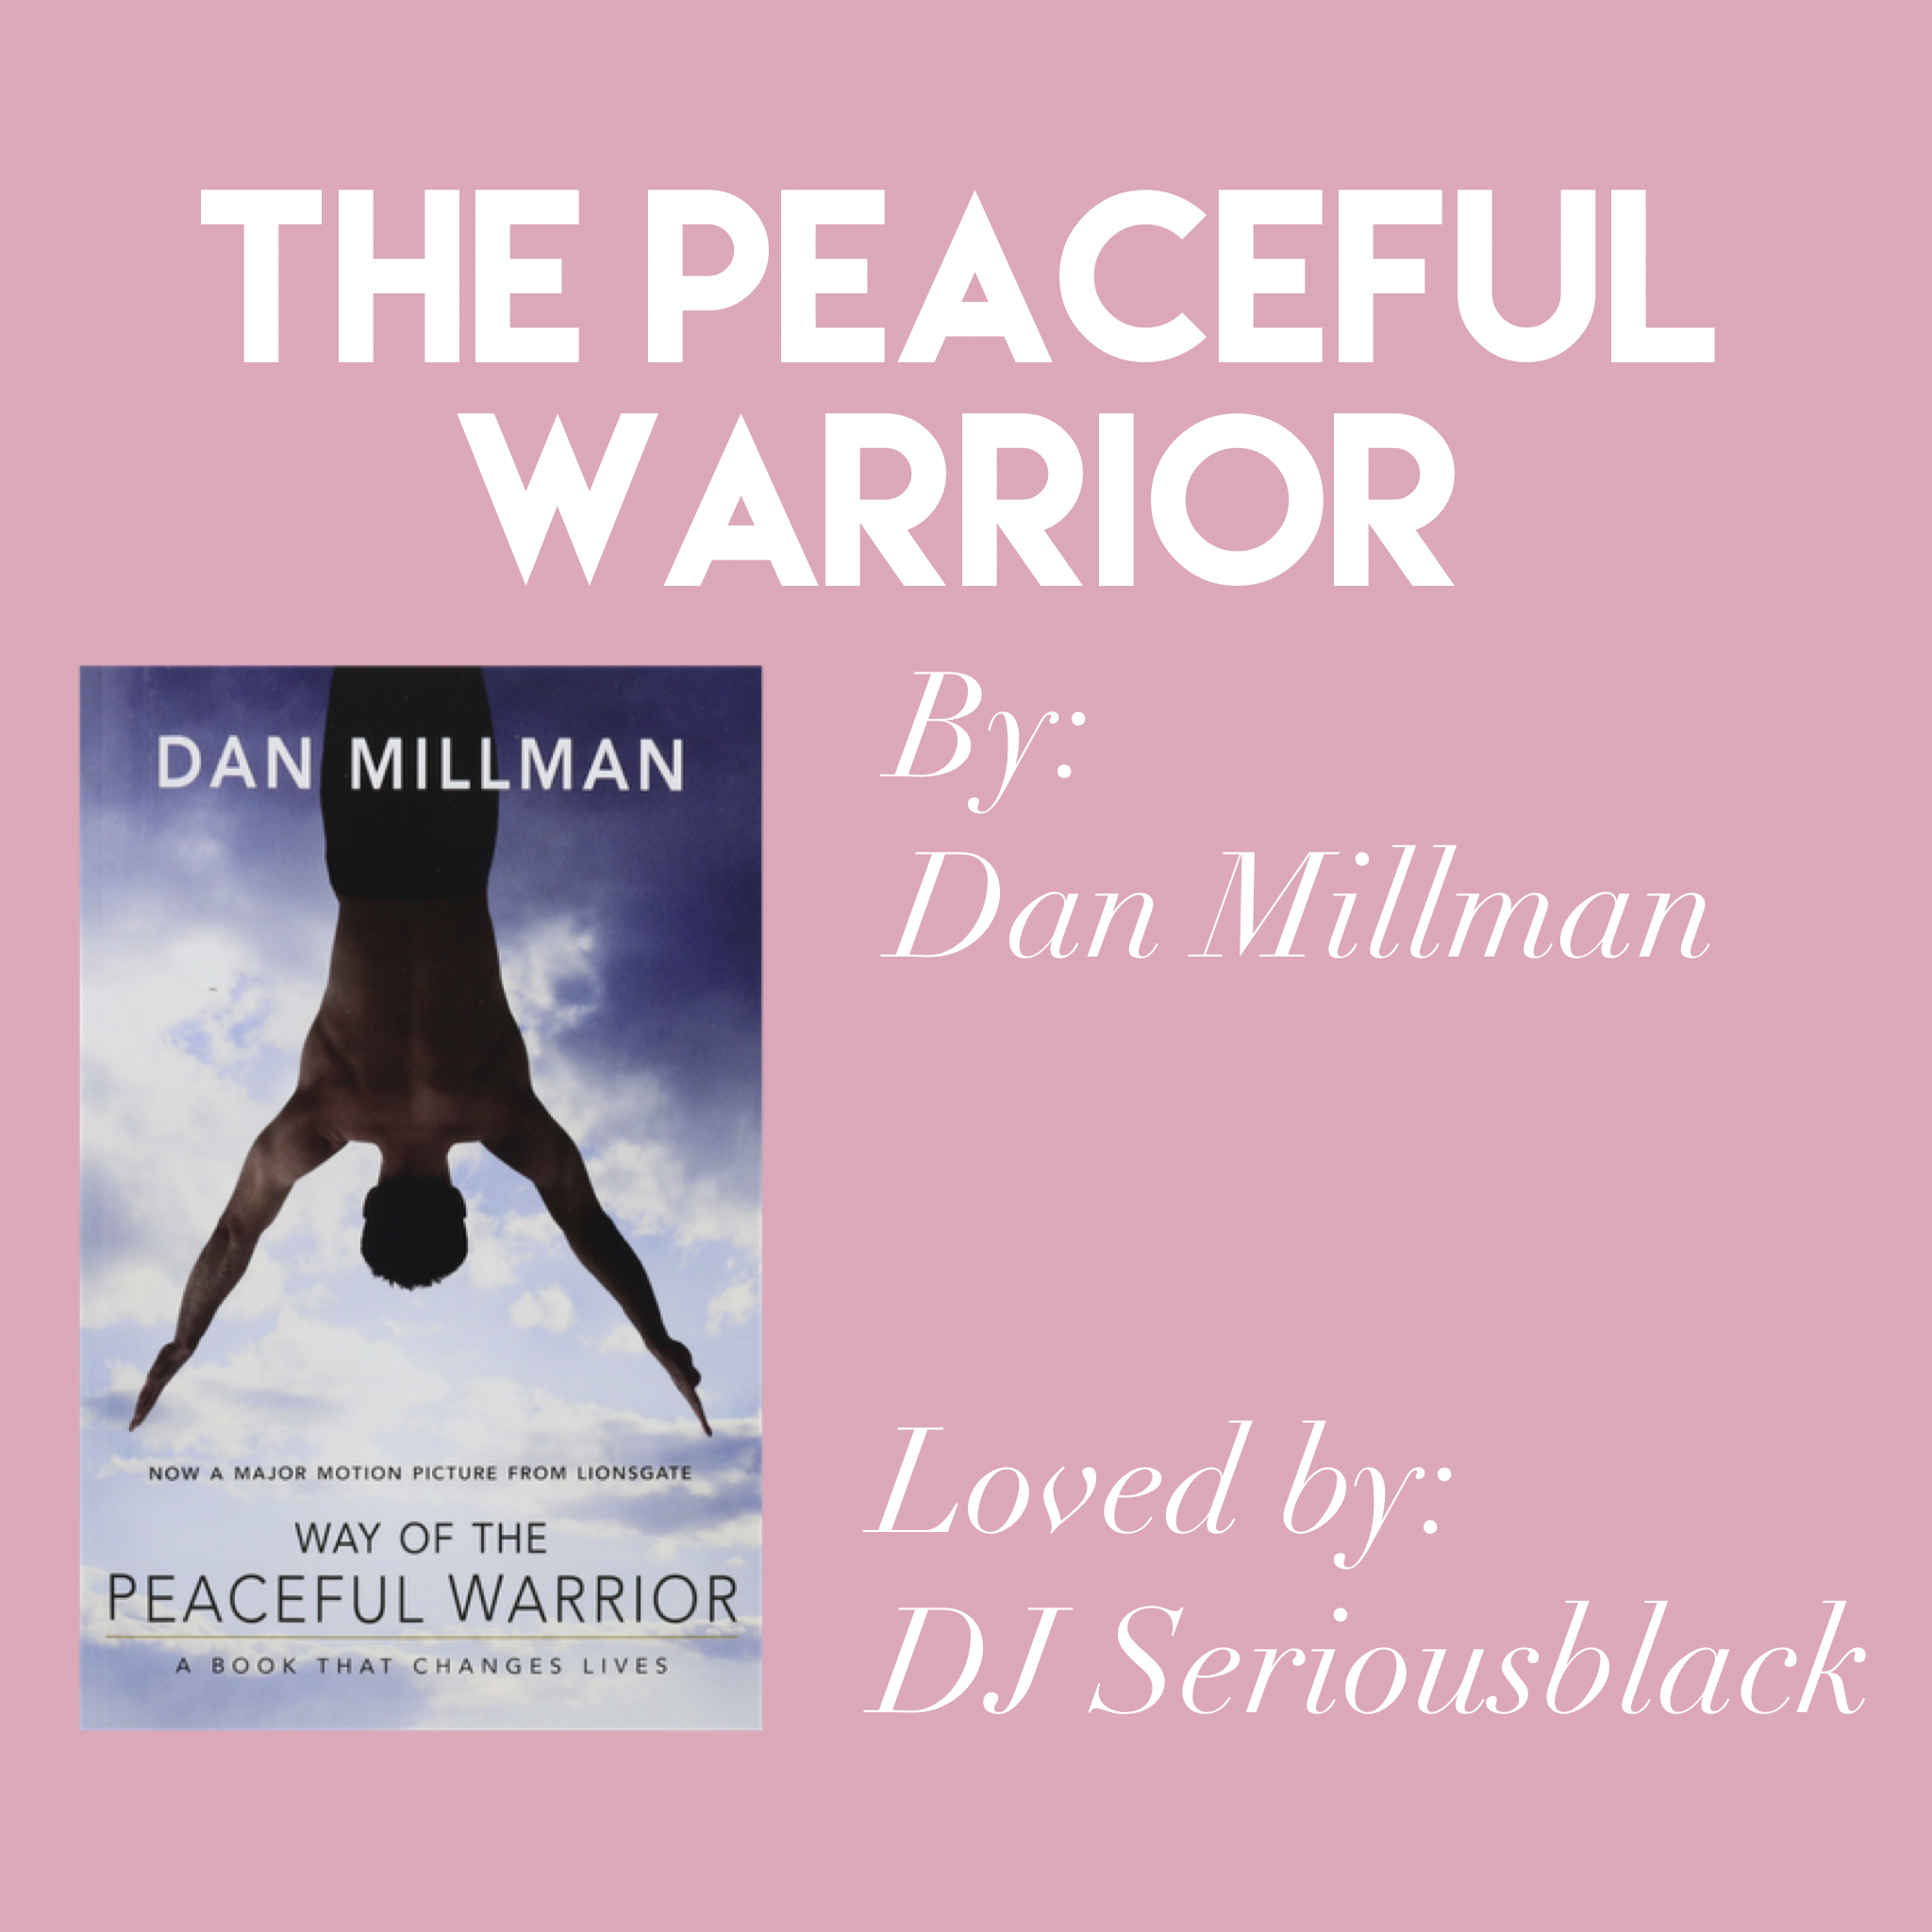 'The Peaceful Warrior' by Dan Millman // Loved by DJ Seriousblack